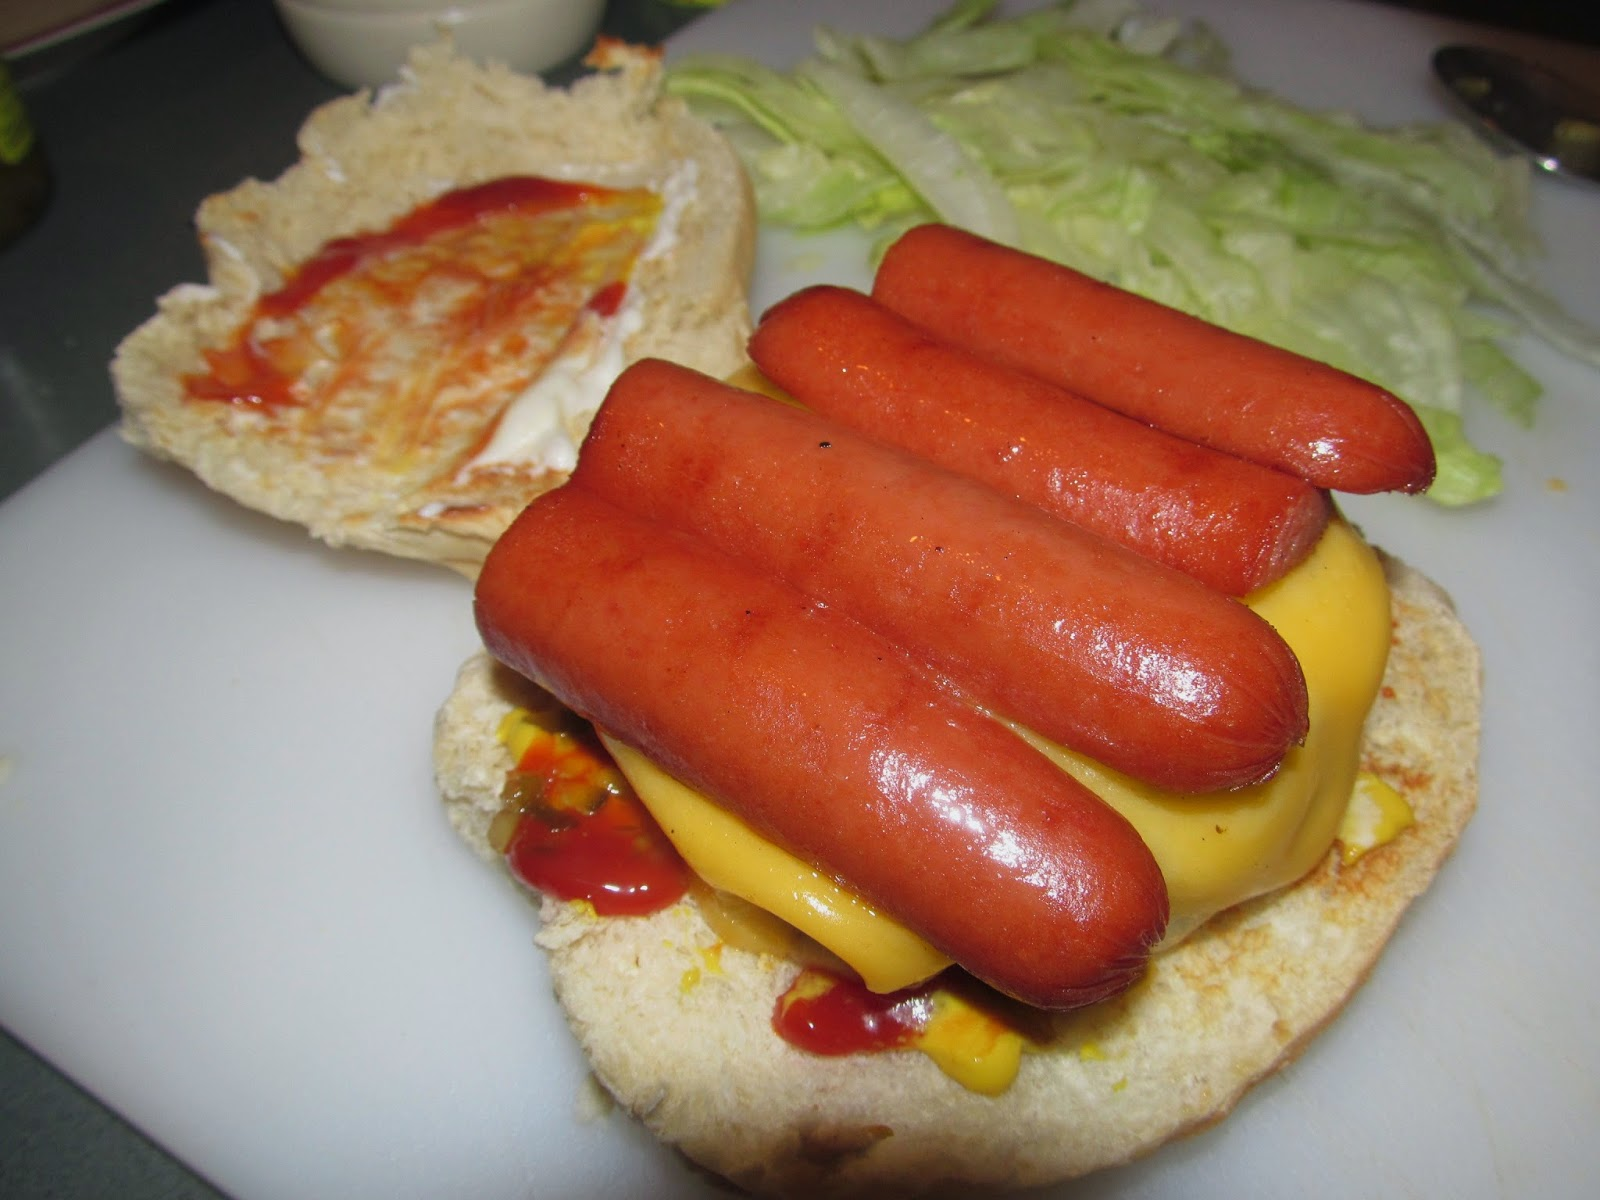 cheeseburger and hotdogs